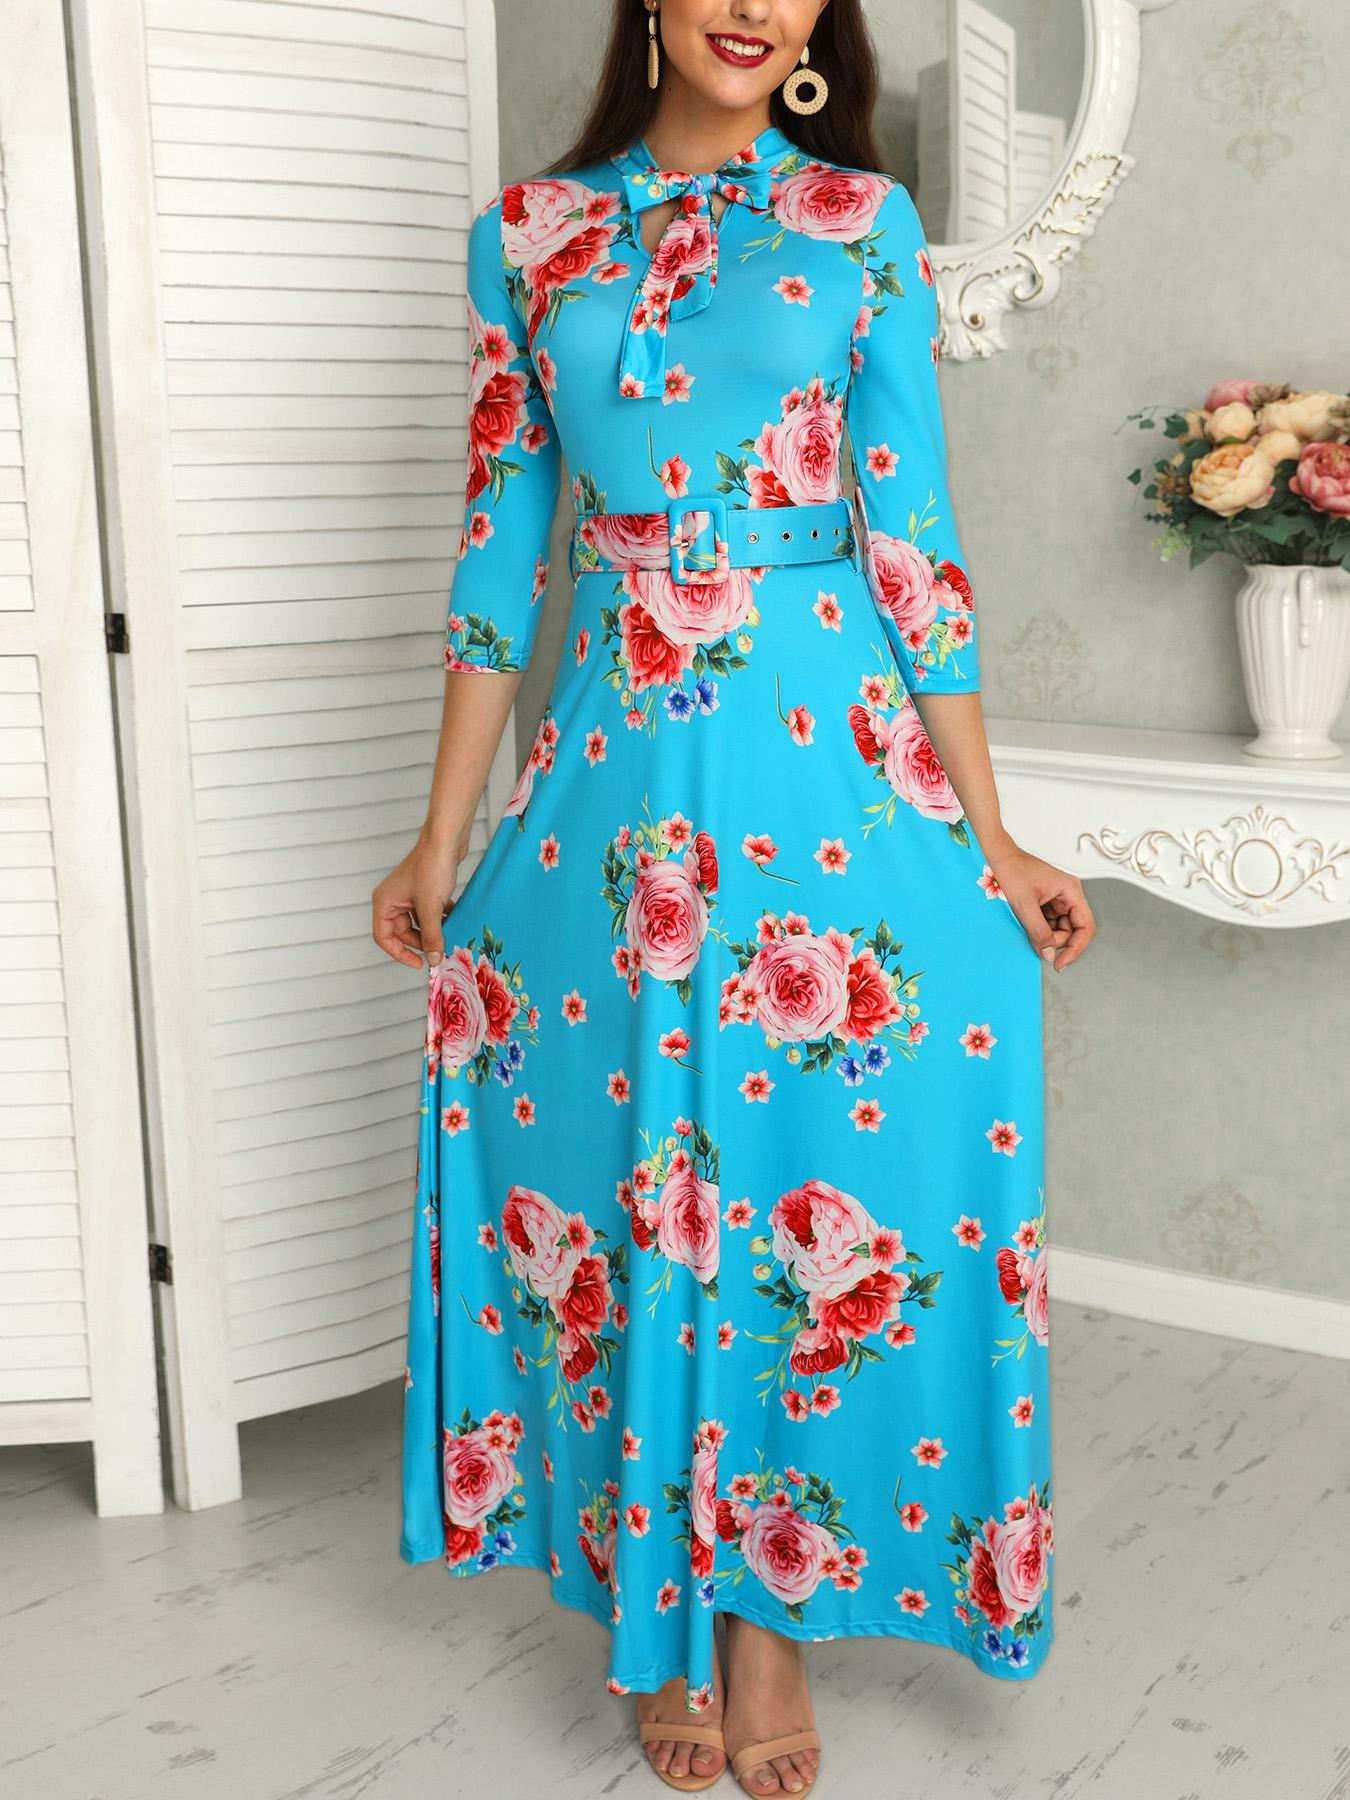 joyshoetique / Floral Print Tied Neck Belted Maxi Dress